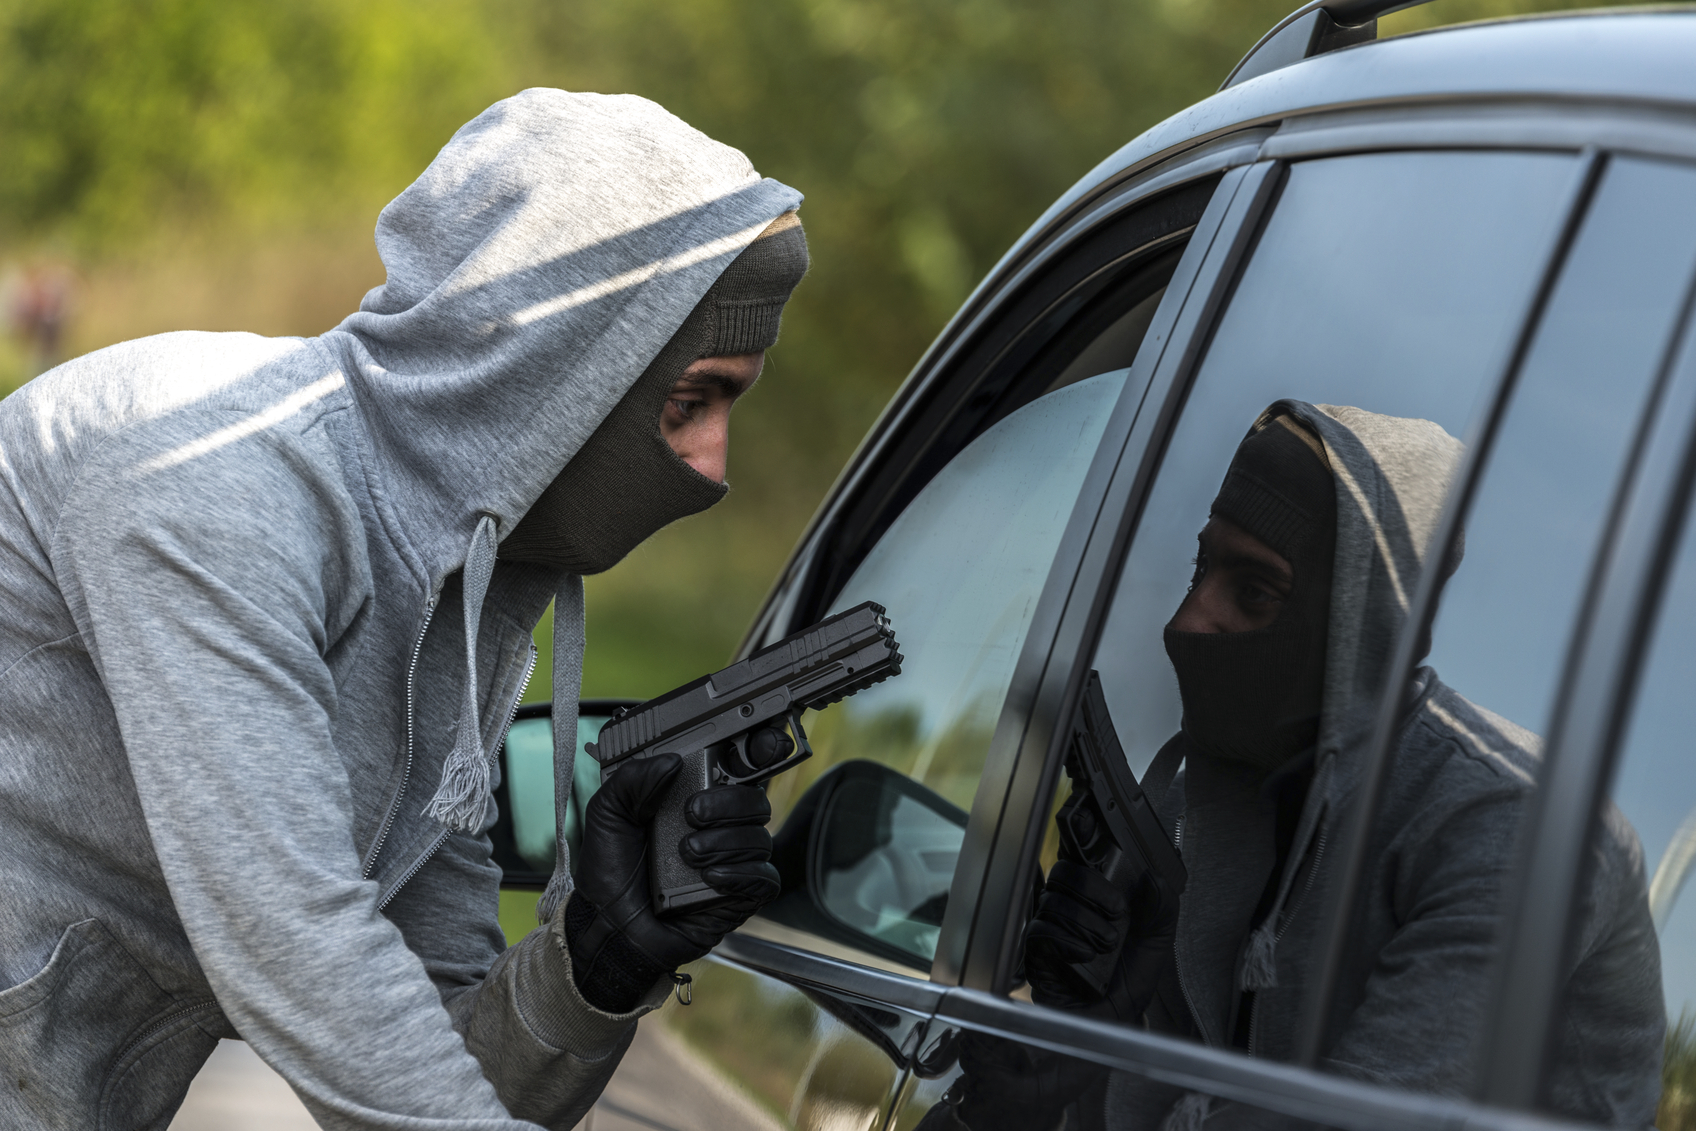 Christmas Eve is the 7th most popular holiday for vehicle theft, according to the National Insurance Crime Bureau. New Year's Day tops a list of most vehicle thefts by holiday compiled by the Insurance Information Institute. (Photo: iStock)